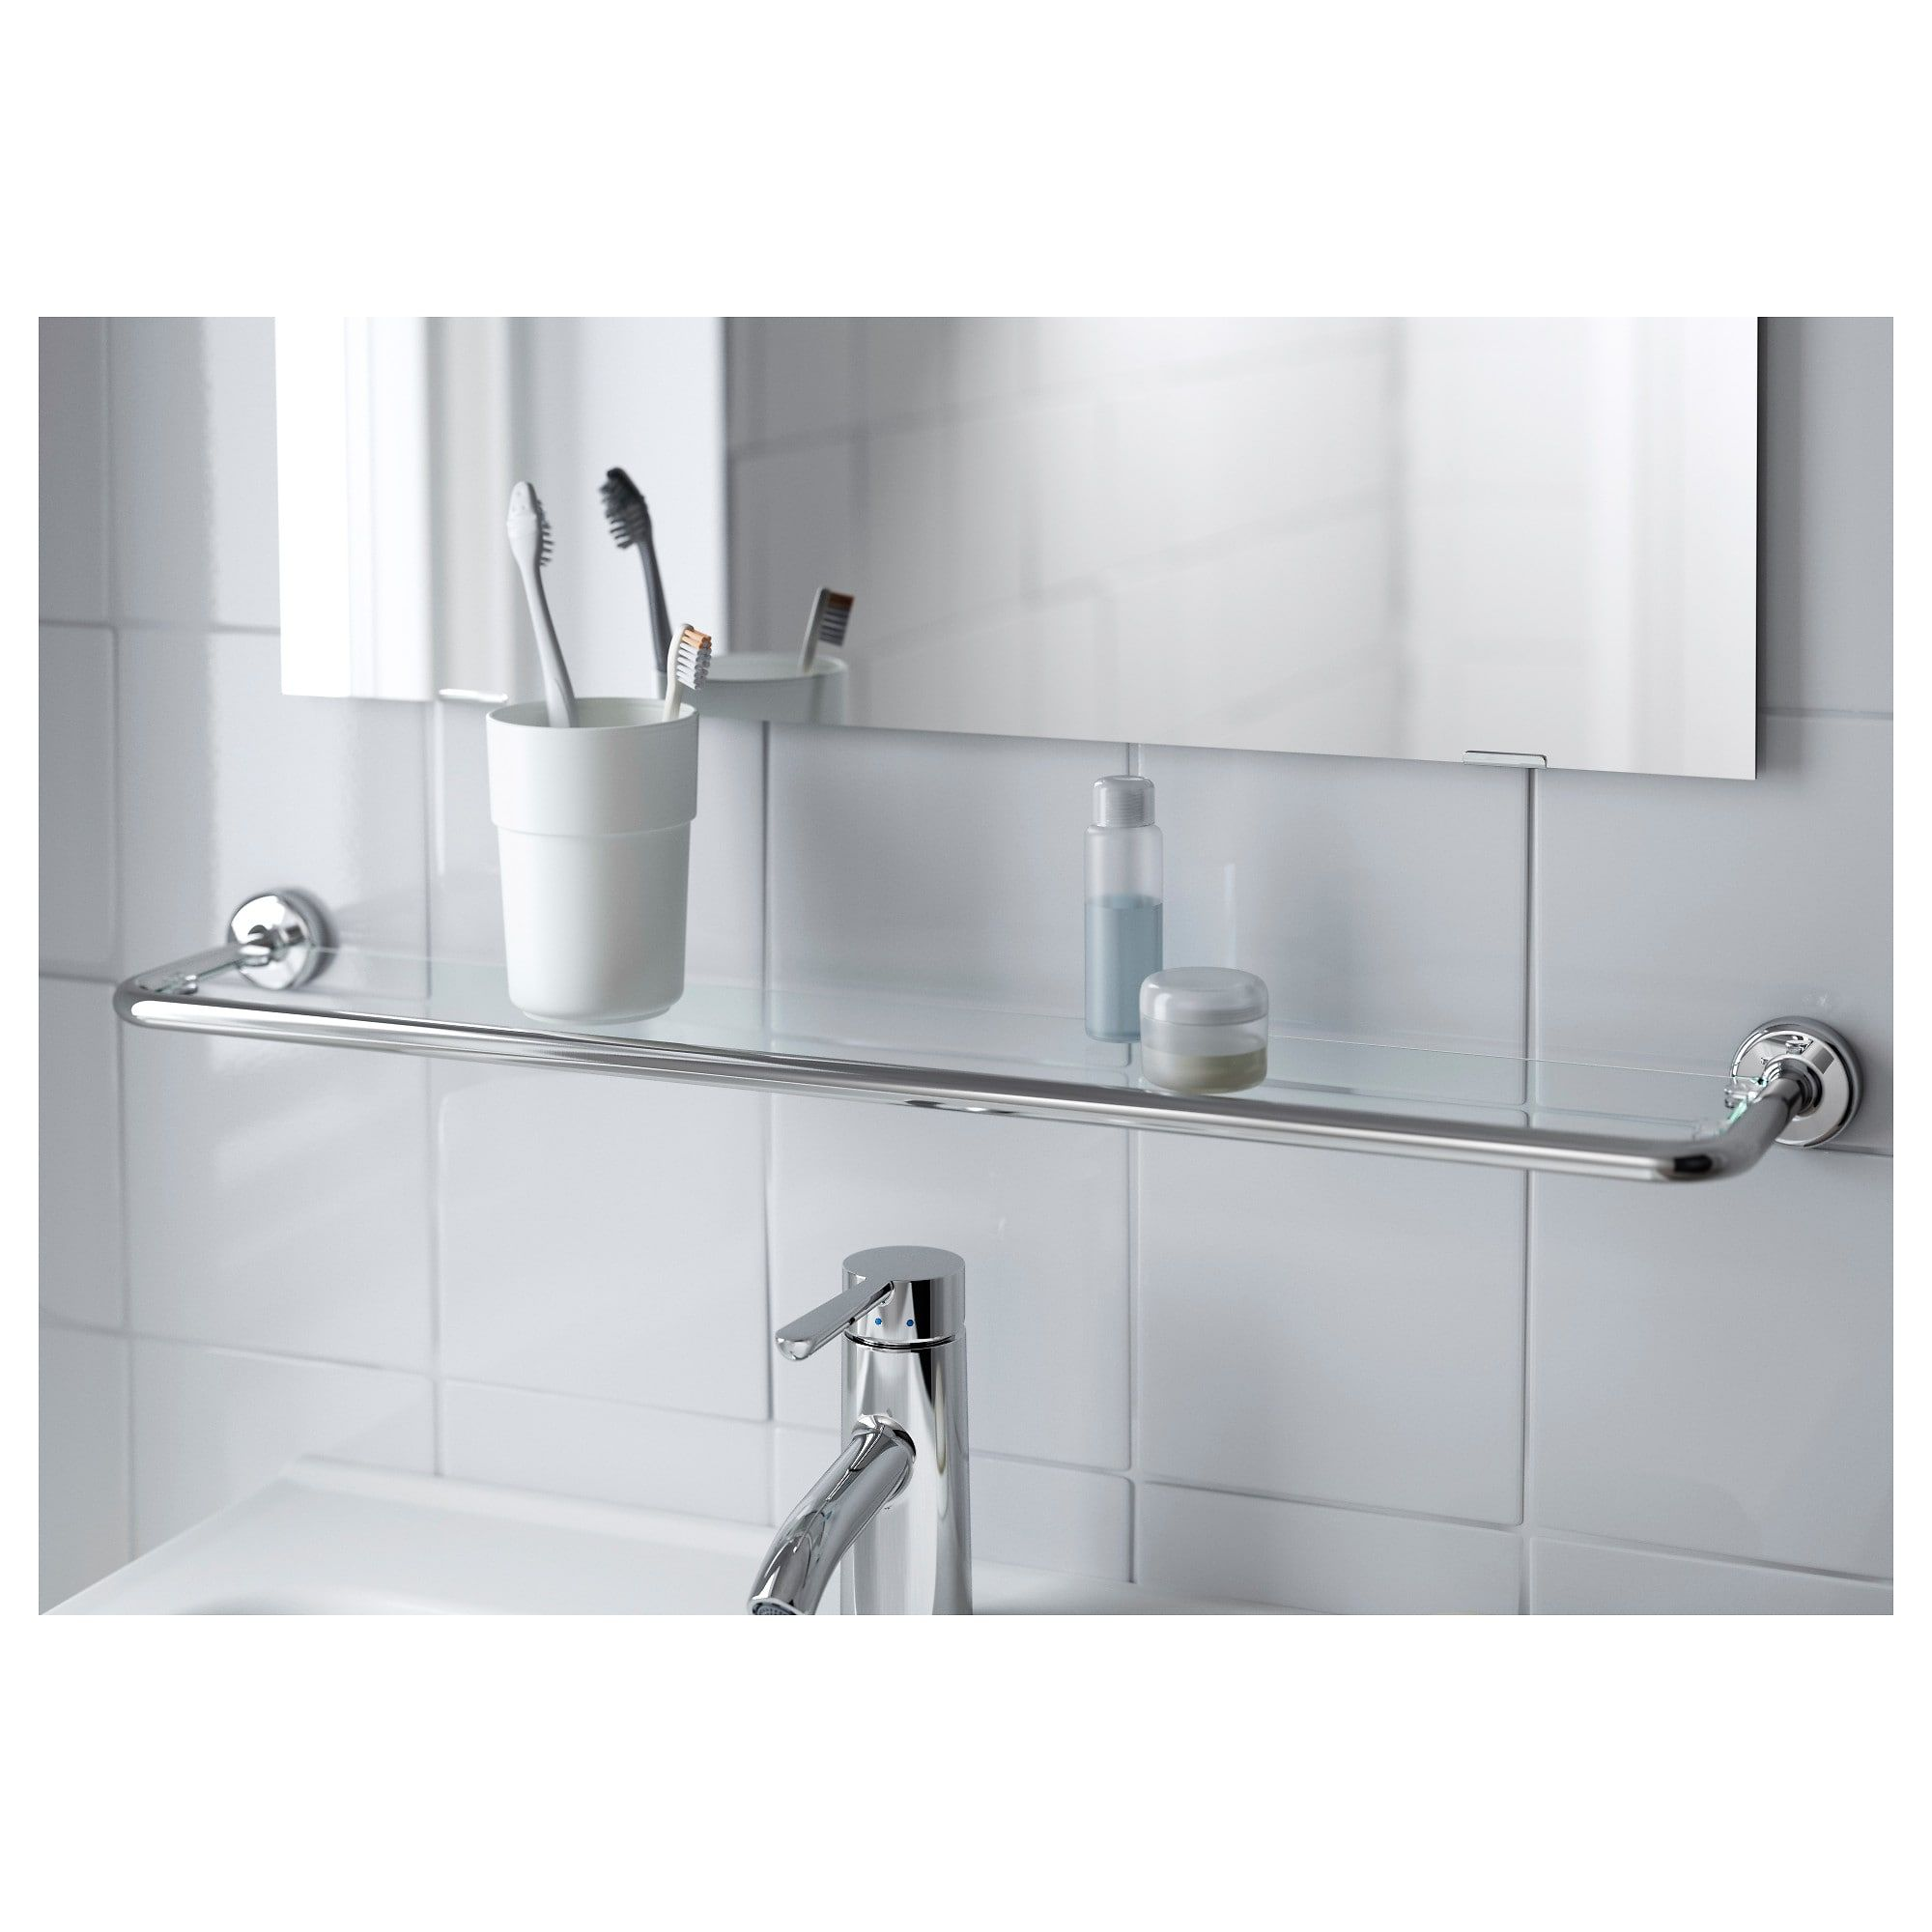 glass shelf voxnan chrome effect ping bathroom floating shelves ikea hallway storage bench concealed cabinet locker command wall victorian brackets coat hooks and baskets desk